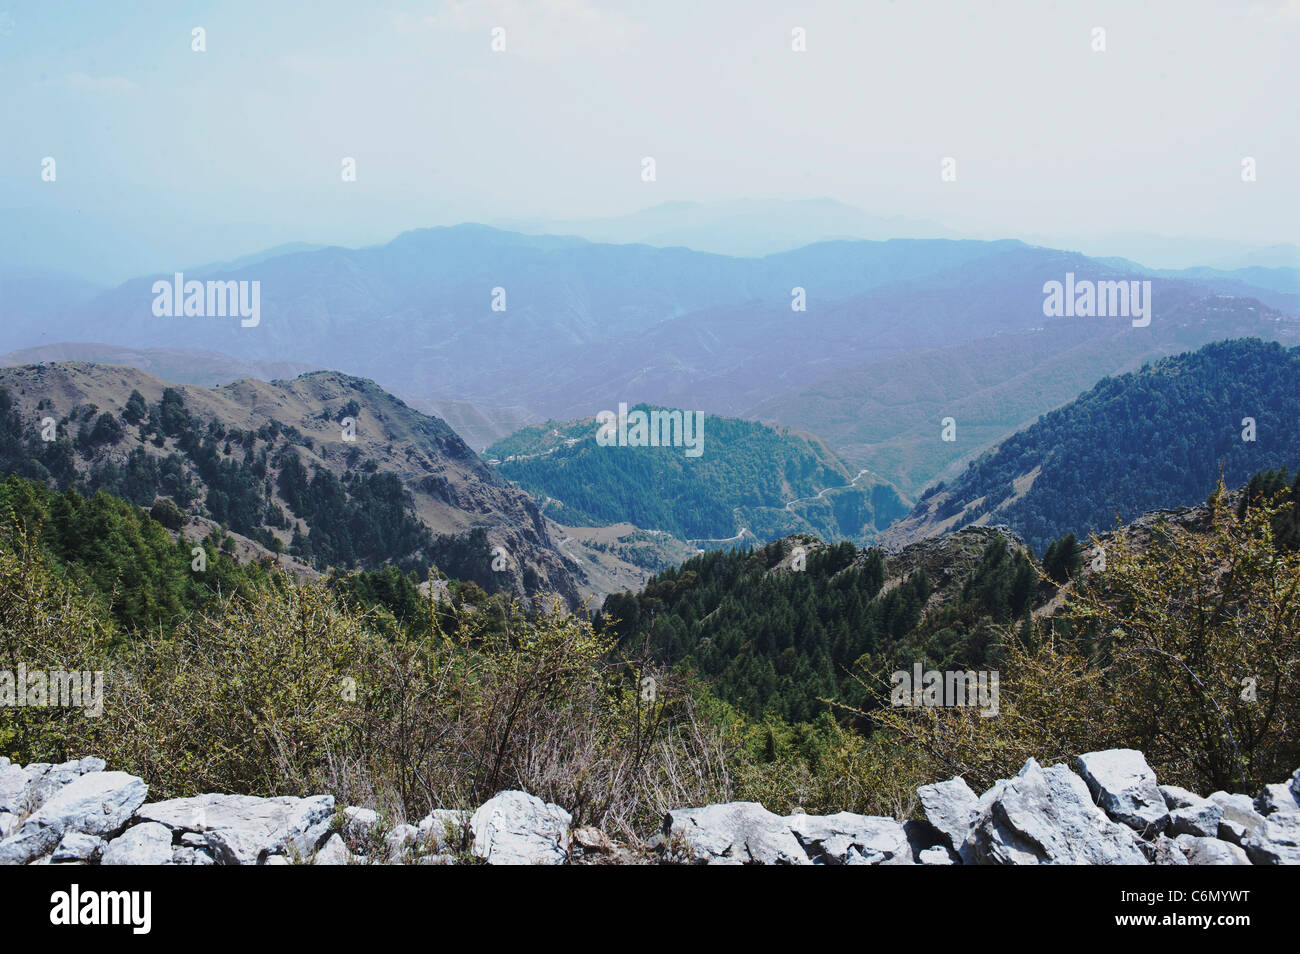 Landscape of Pine trees rolling hills and green valley at Chakrata-Uttarakhand India. - Stock Image